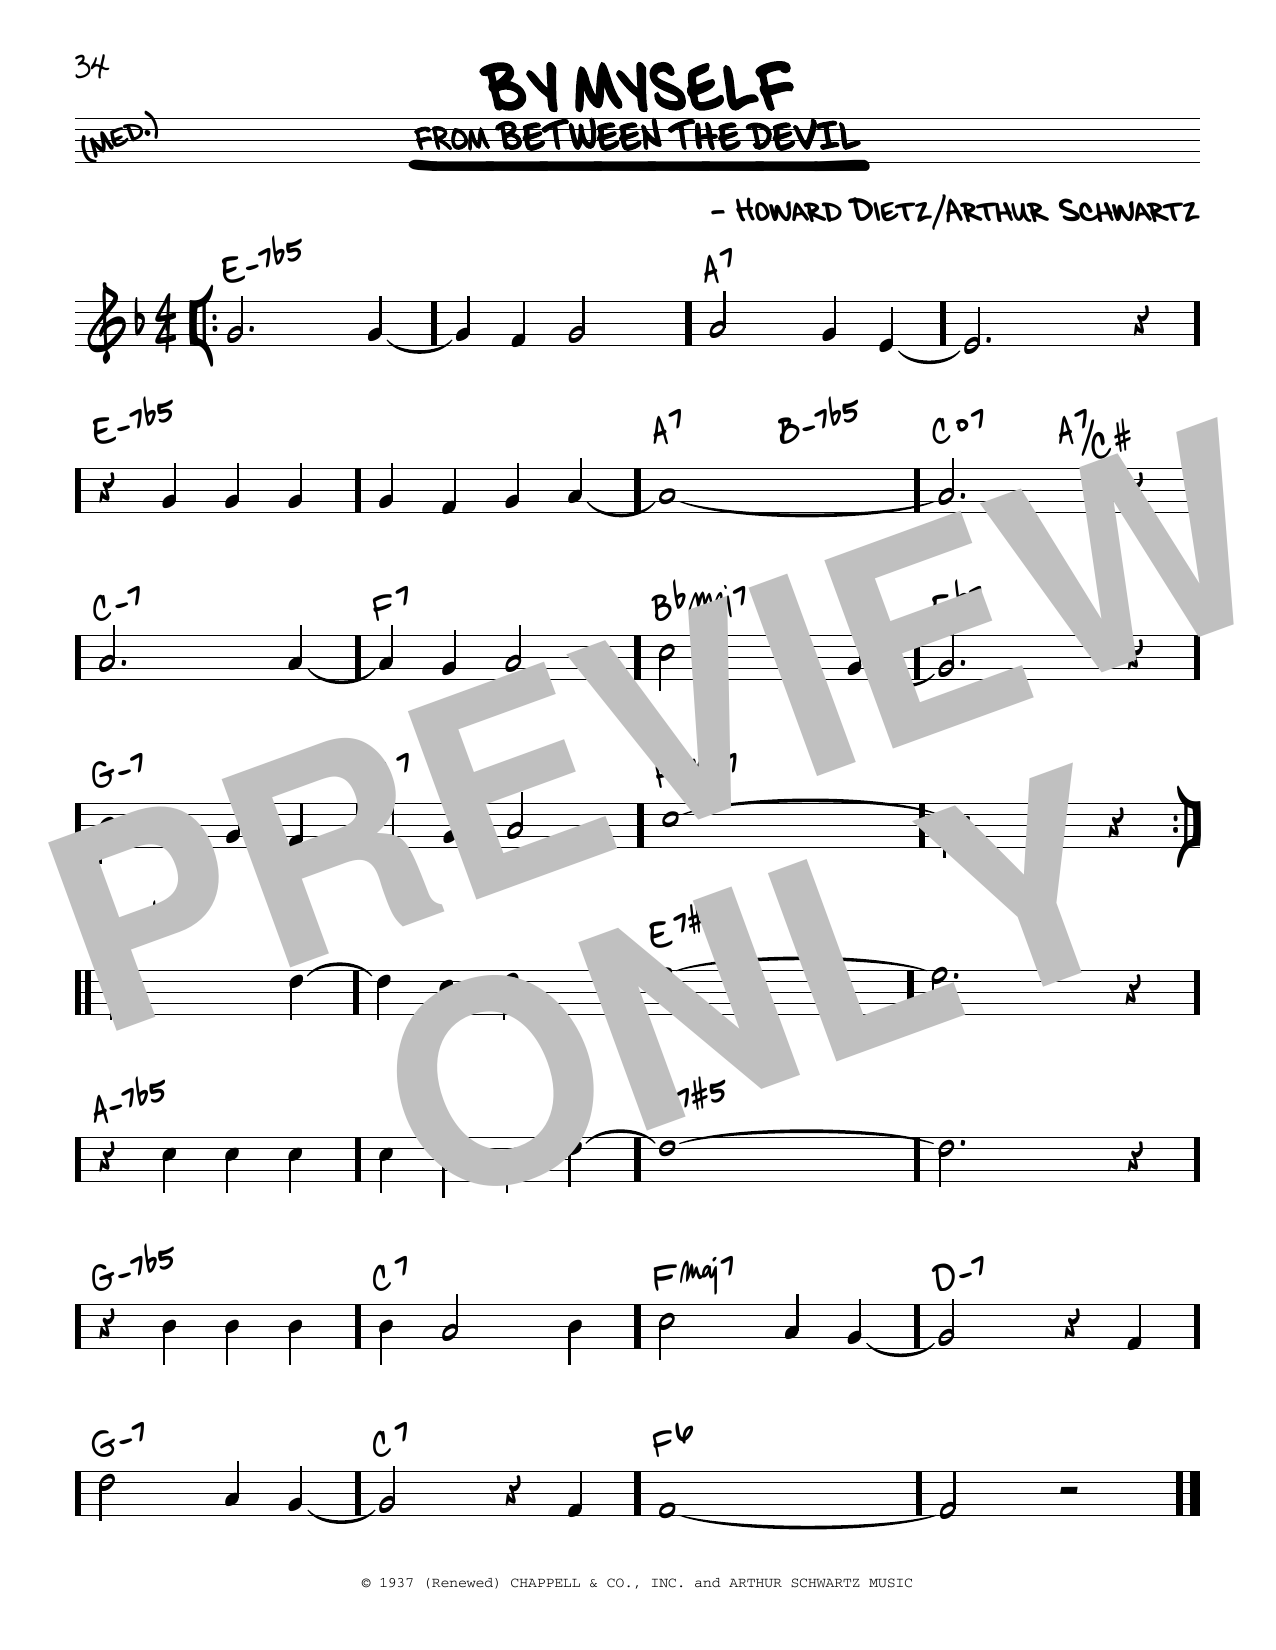 By Myself Sheet Music